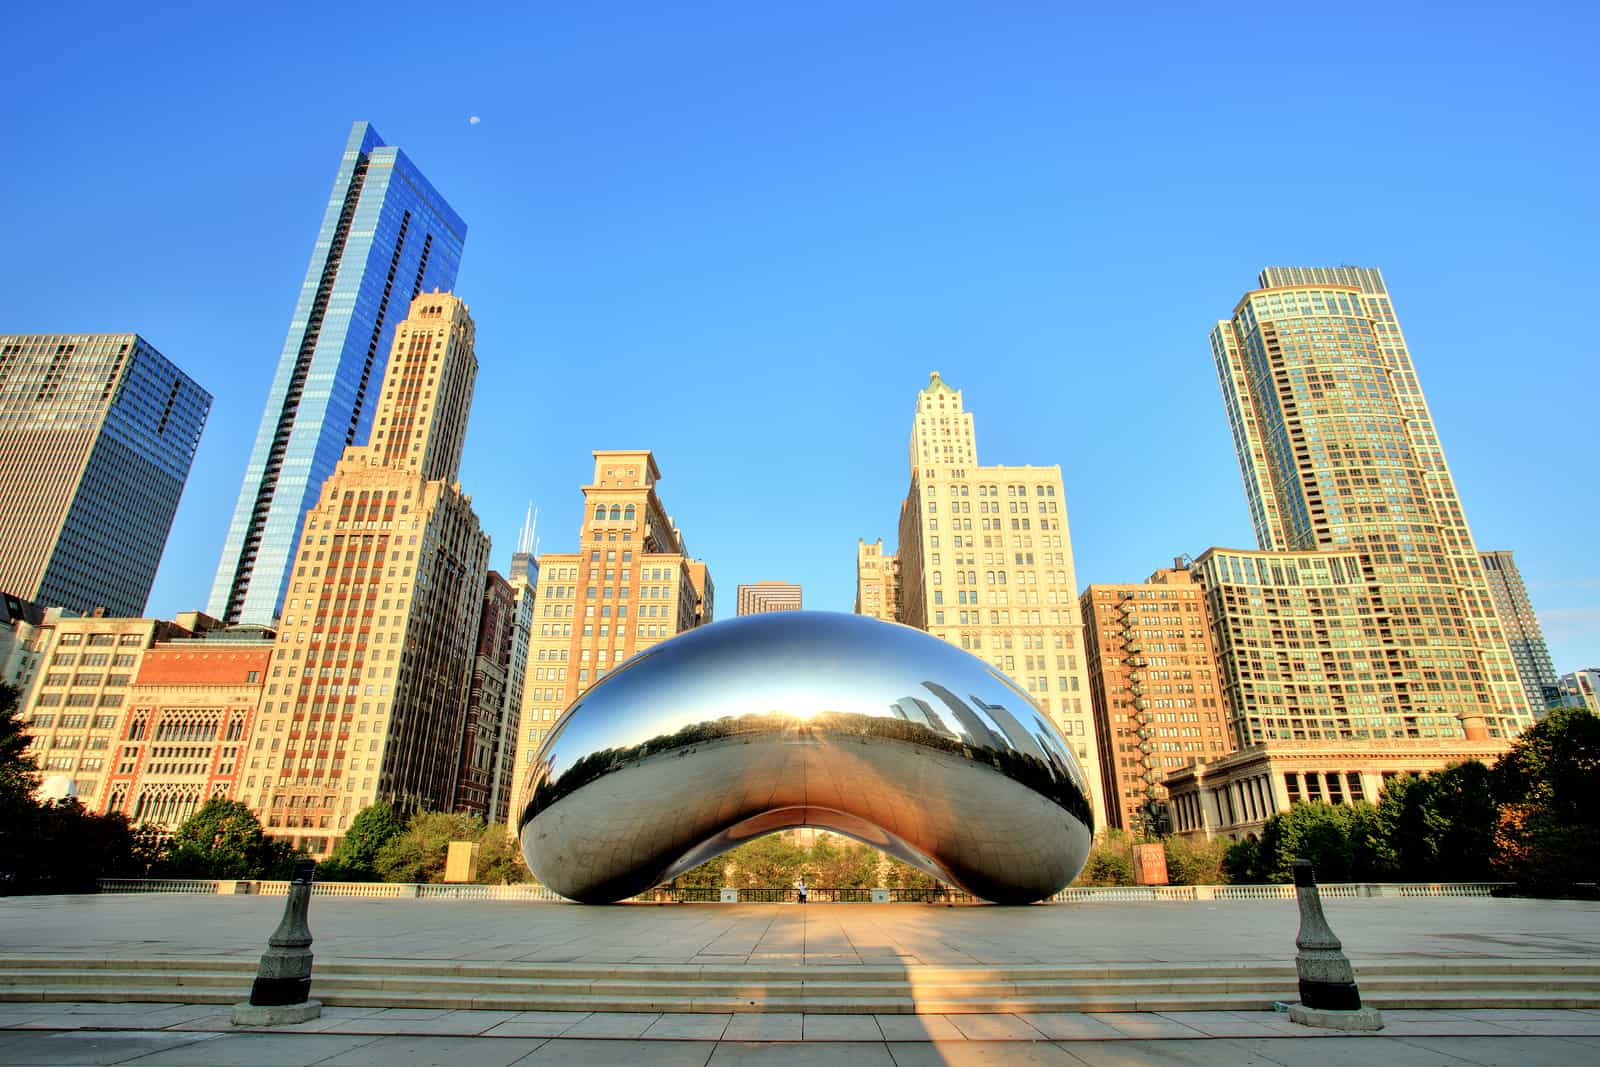 RE/MAX Luxury Report on Metro Chicago Real Estate: $1 Million-Plus Housing Market Strengthened in 2017; Sales Gained While Inventory Fell